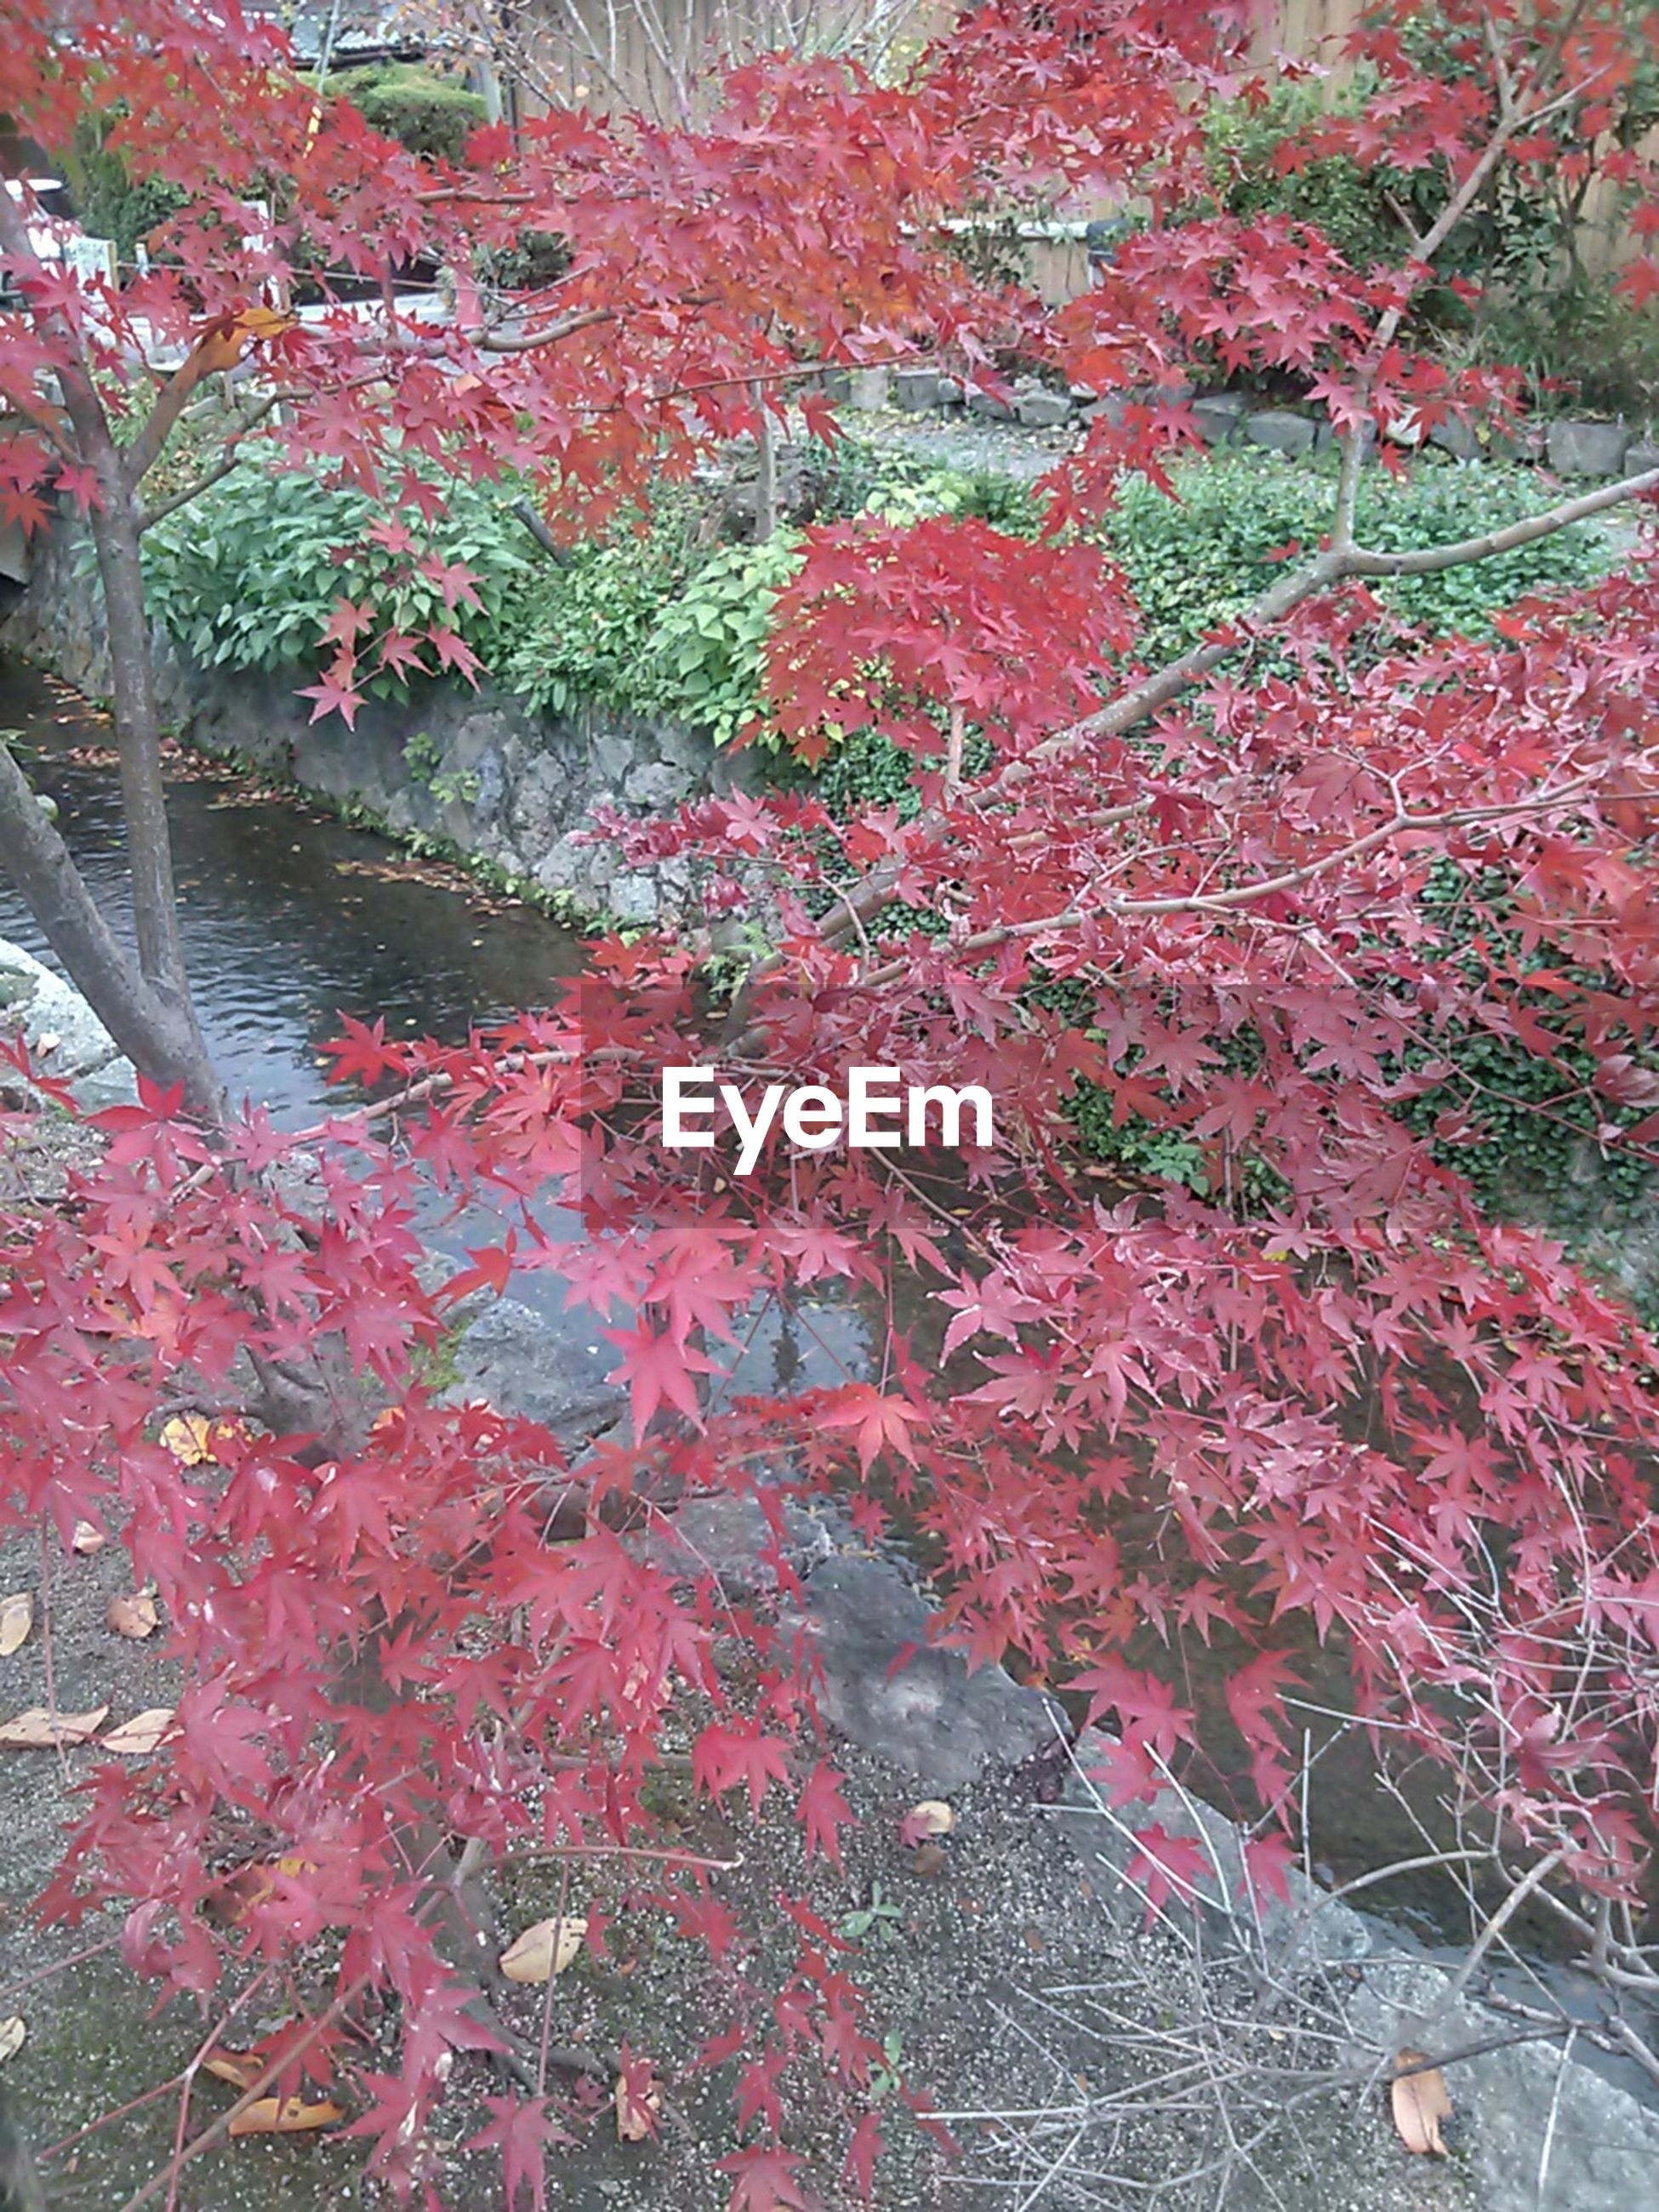 tree, flower, growth, red, branch, beauty in nature, nature, freshness, pink color, season, autumn, tranquility, change, day, plant, outdoors, blossom, leaf, no people, fragility